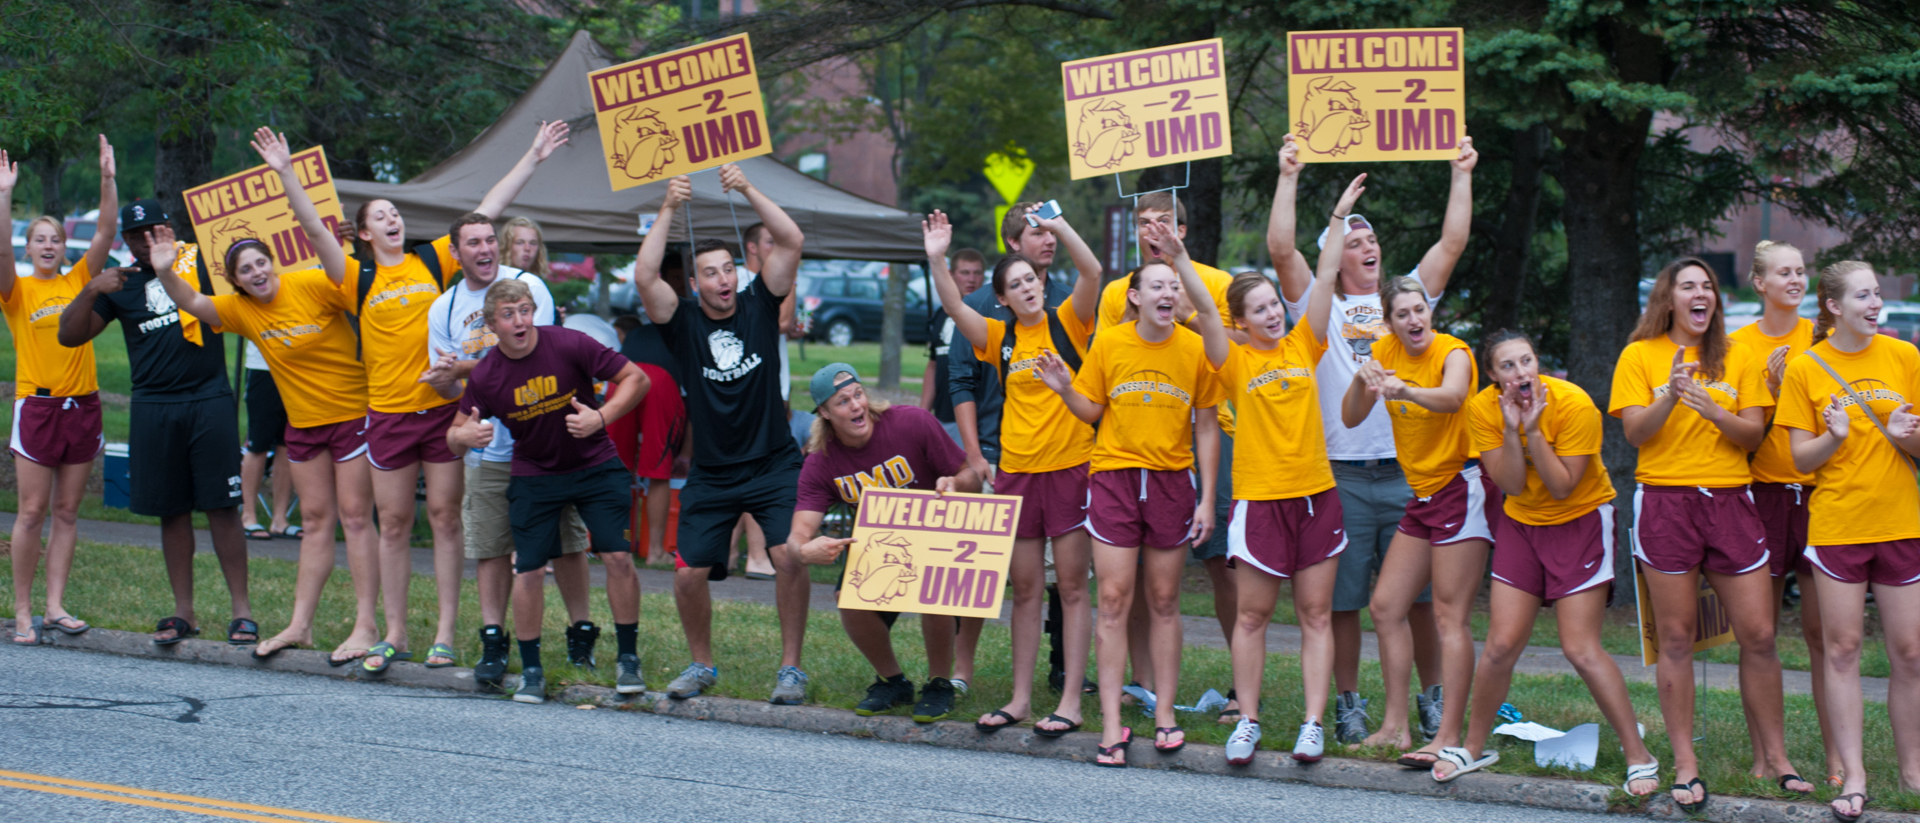 UMD students welcoming new students to campus.